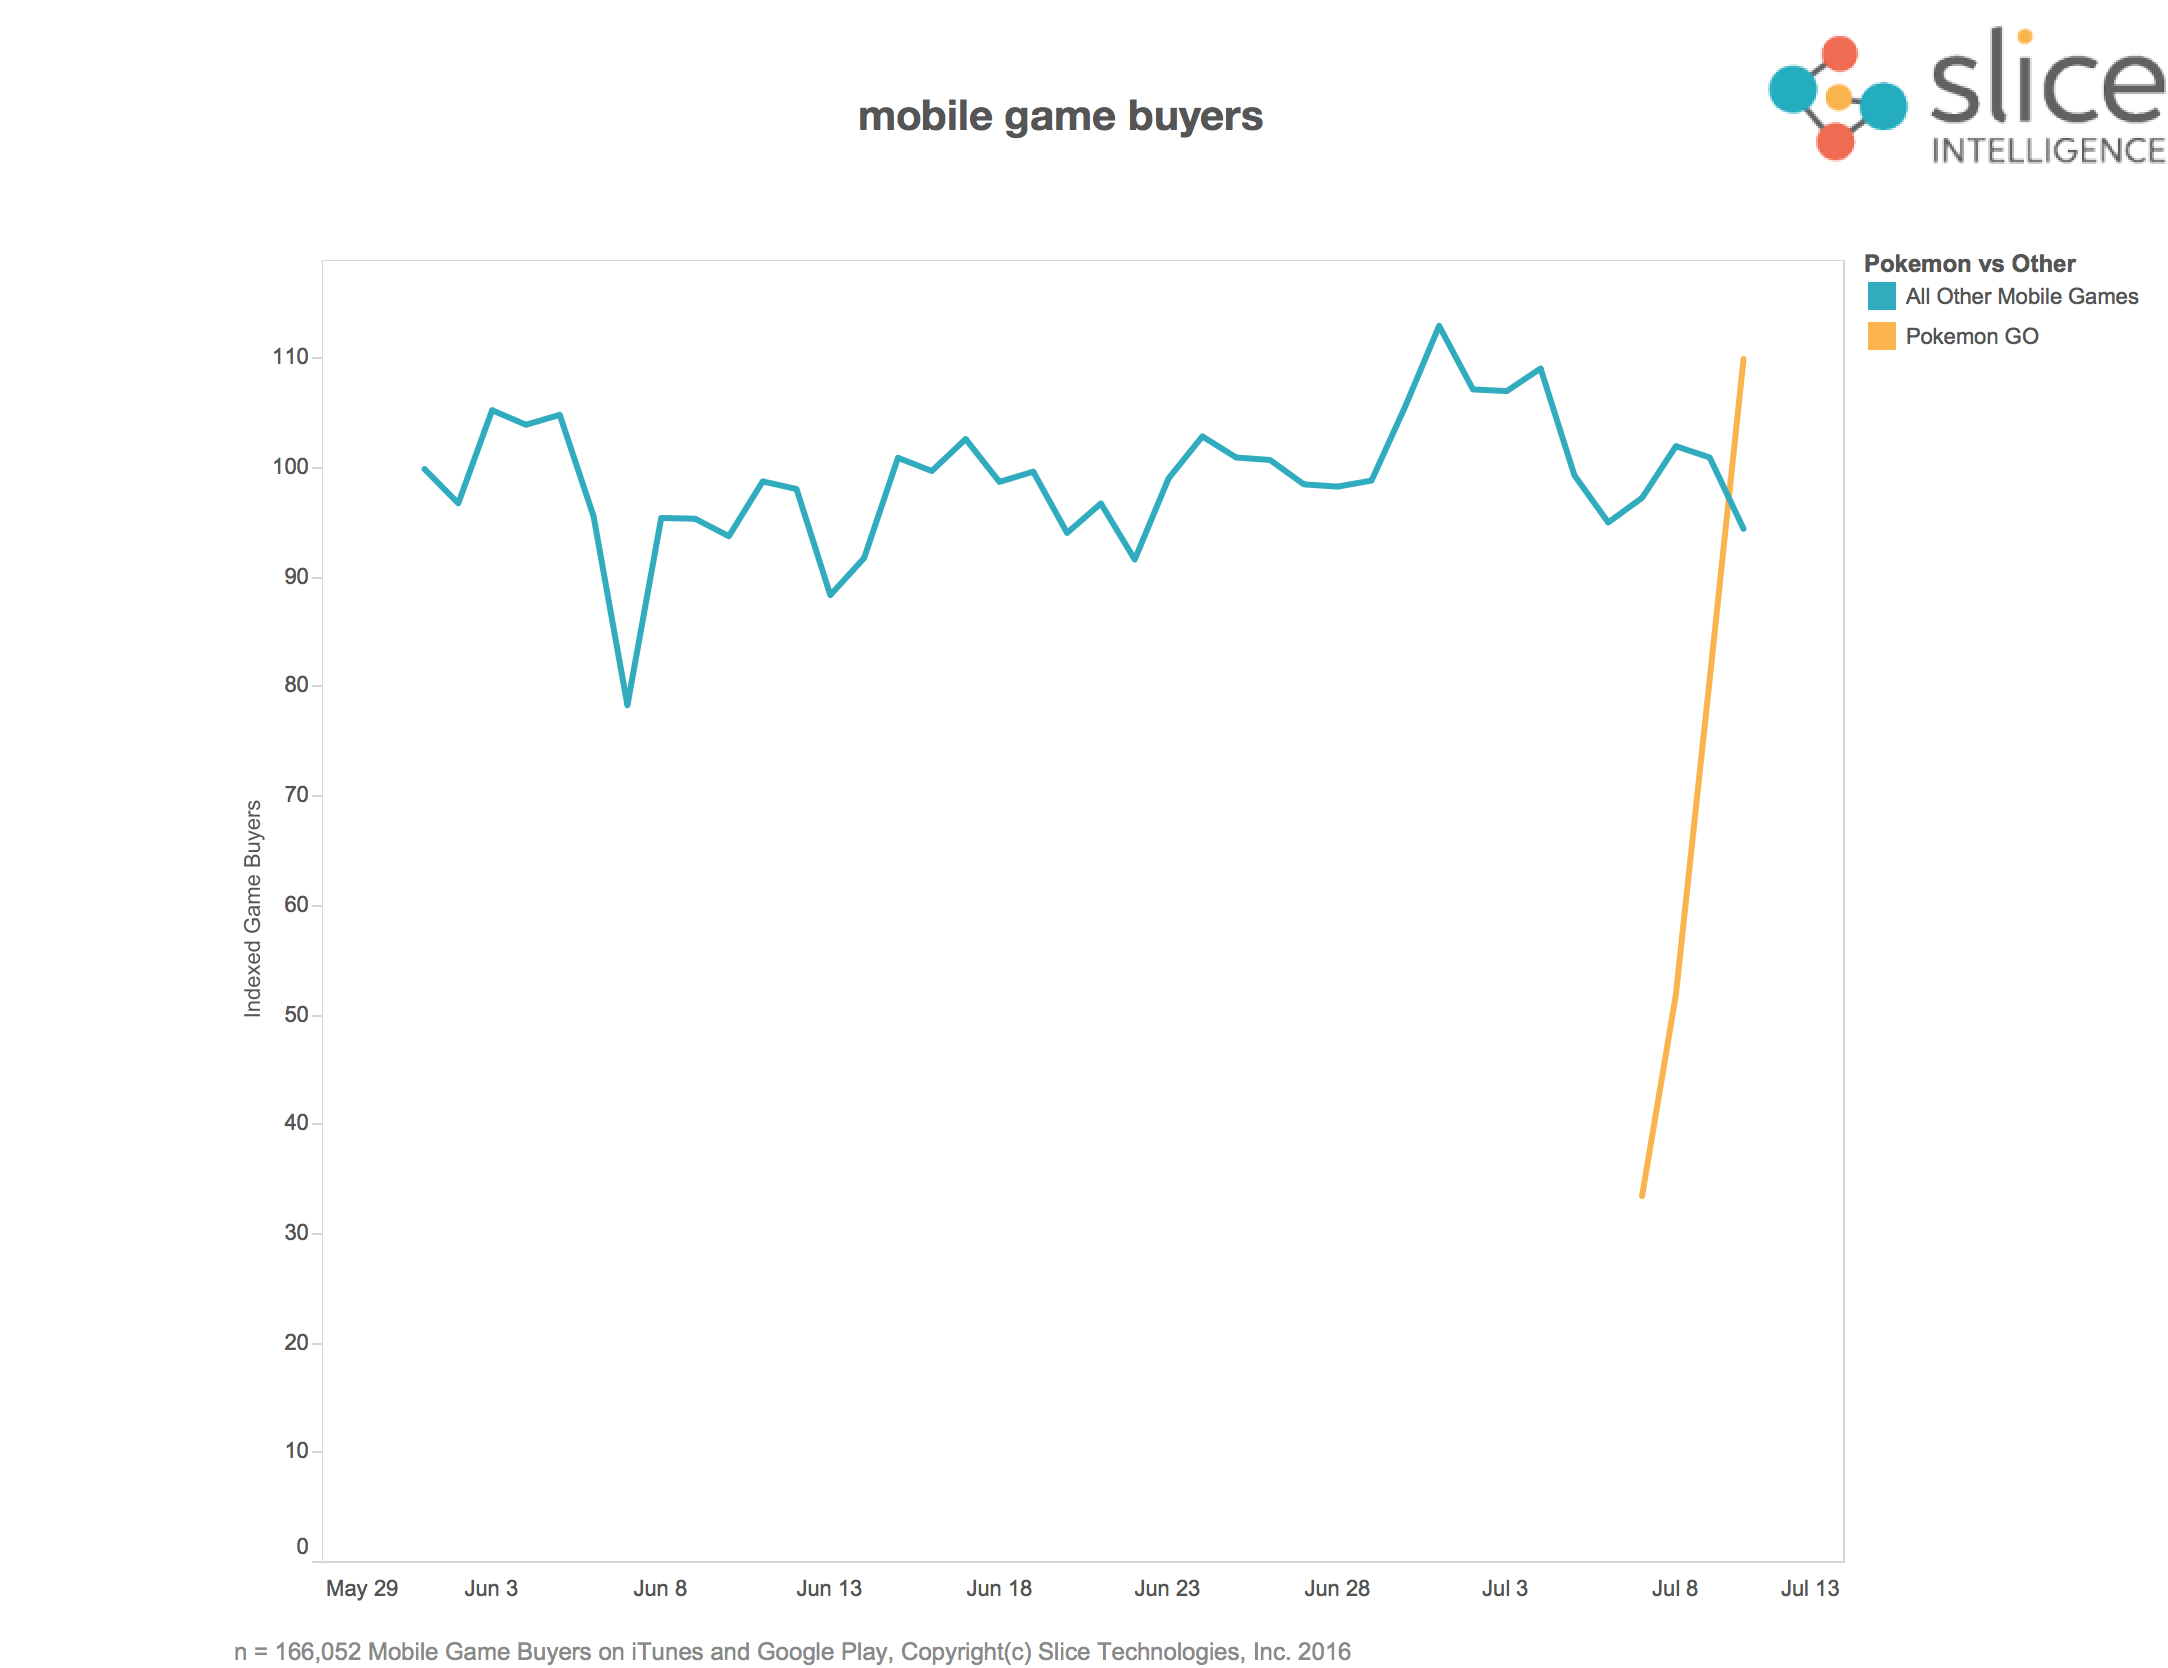 Pokemon GO Dominates Mobile Gaming Purchases Pokemon vs All Other Games 1